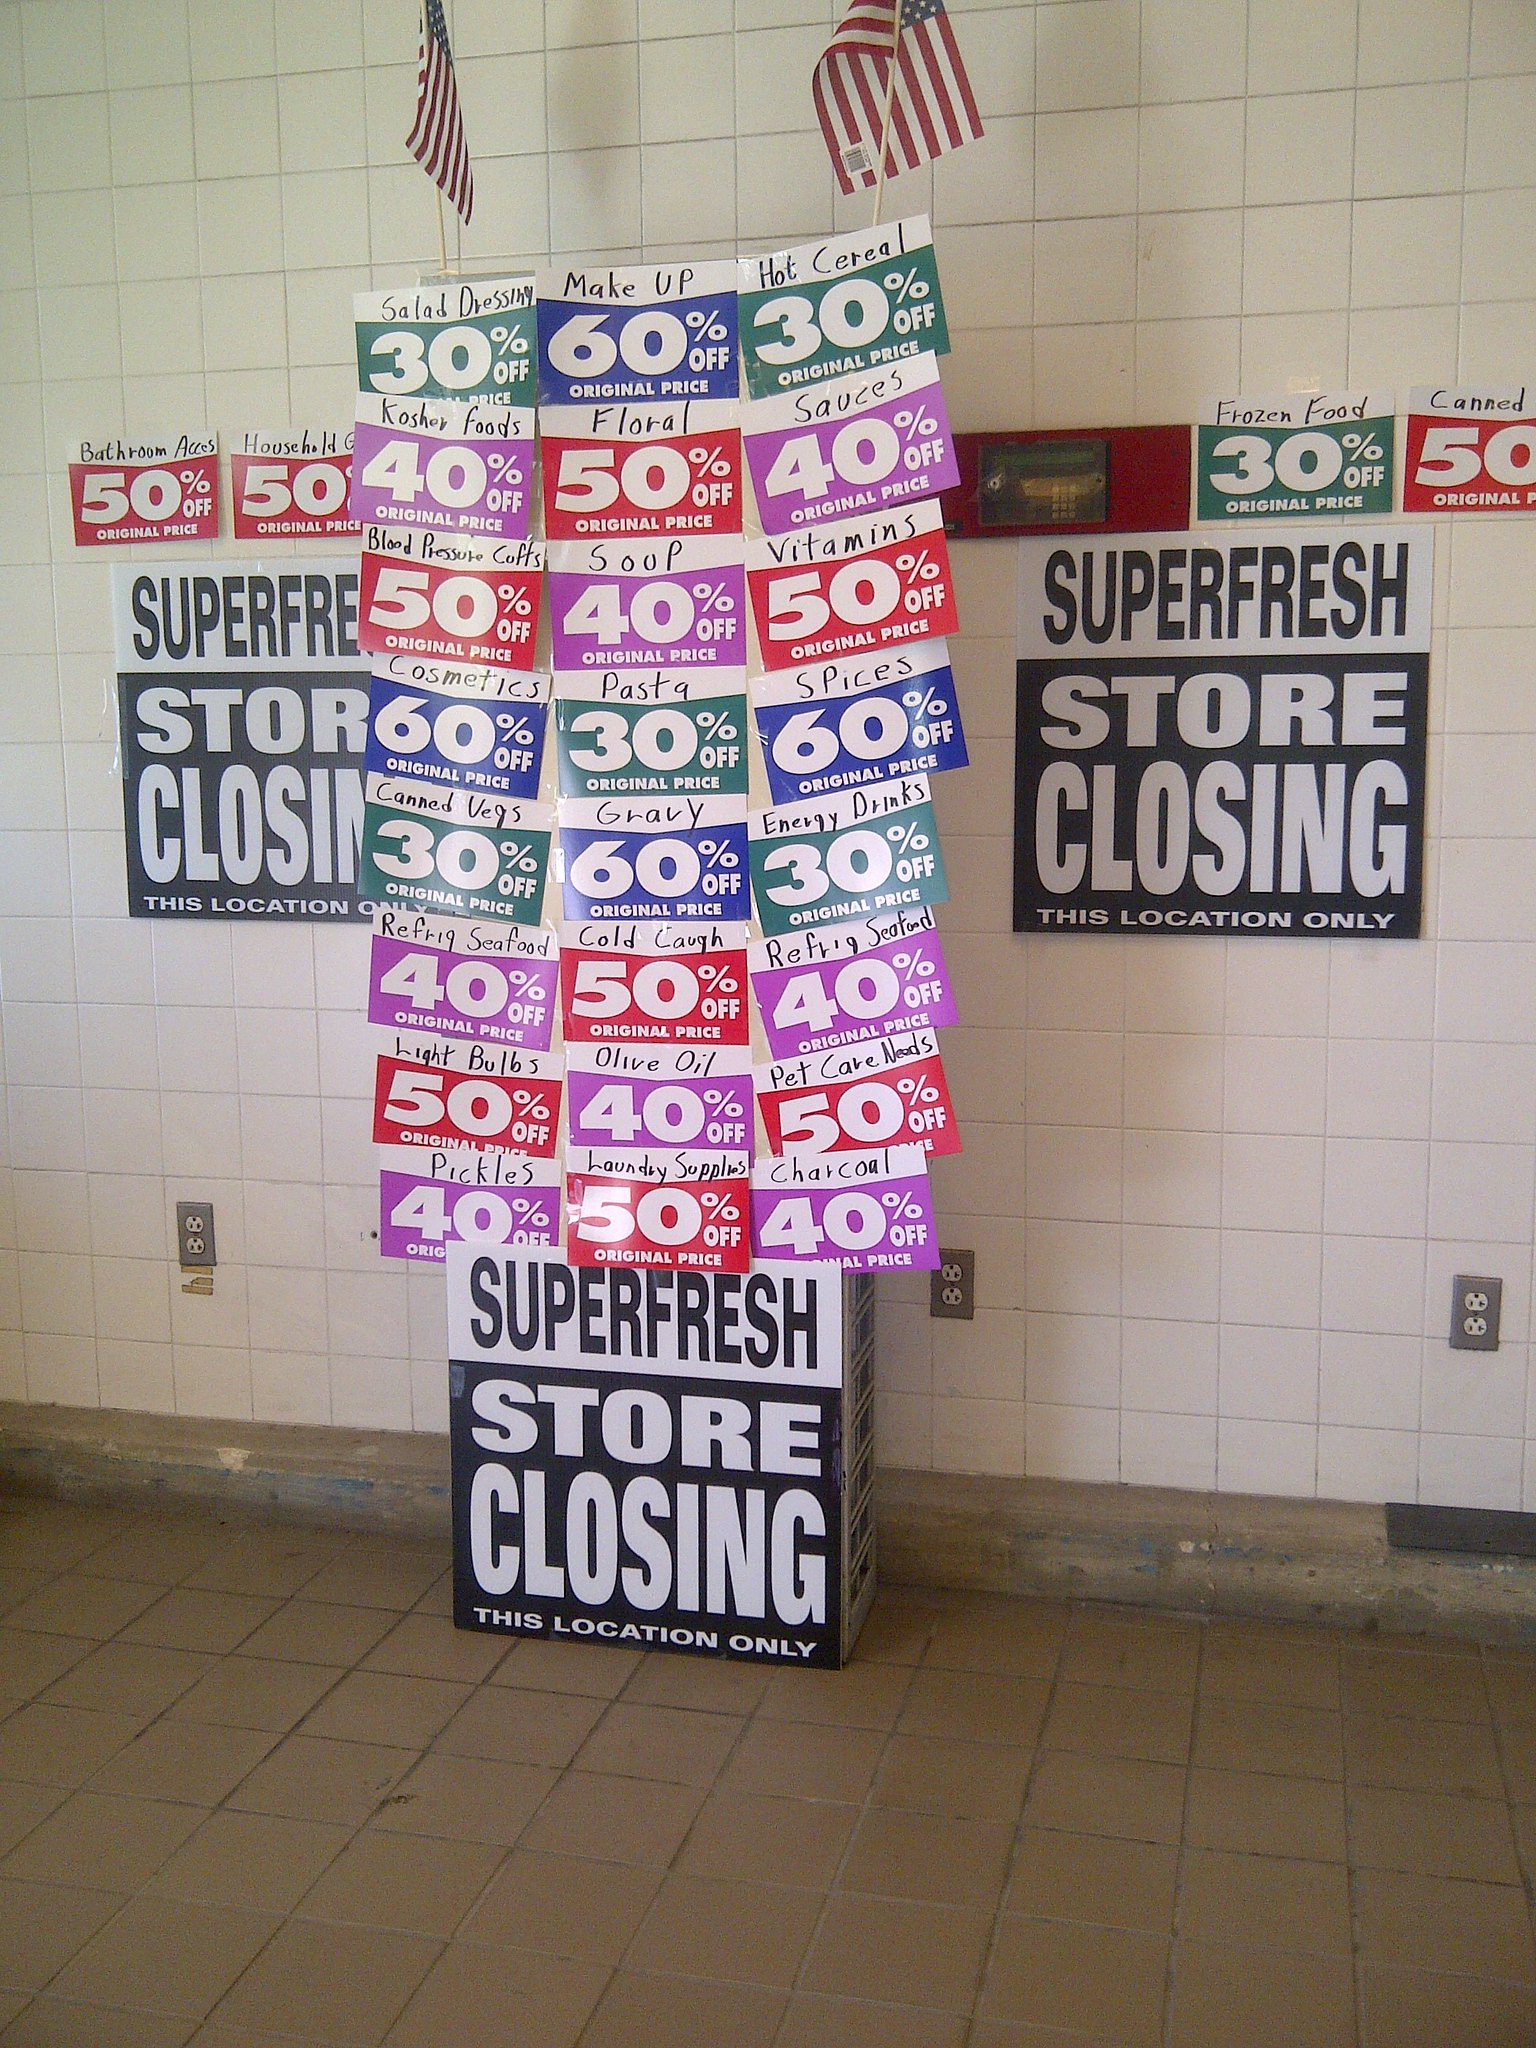 Superfresh #562 Claymont, DE